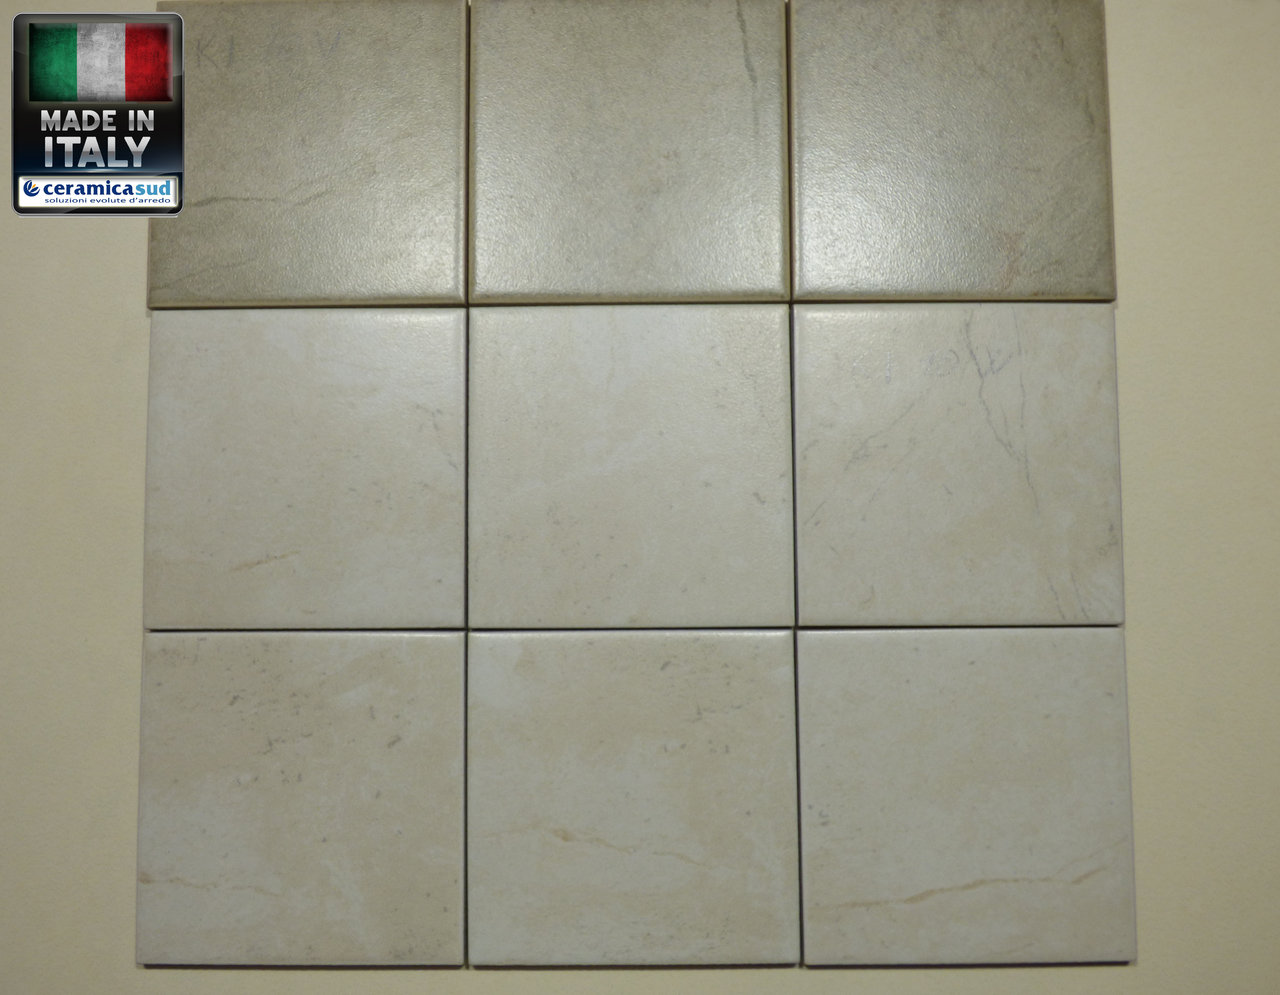 Piastrelline 10 x 10 cm. Gres Porcellanato Made in Italy - Top Quality Sottocosto